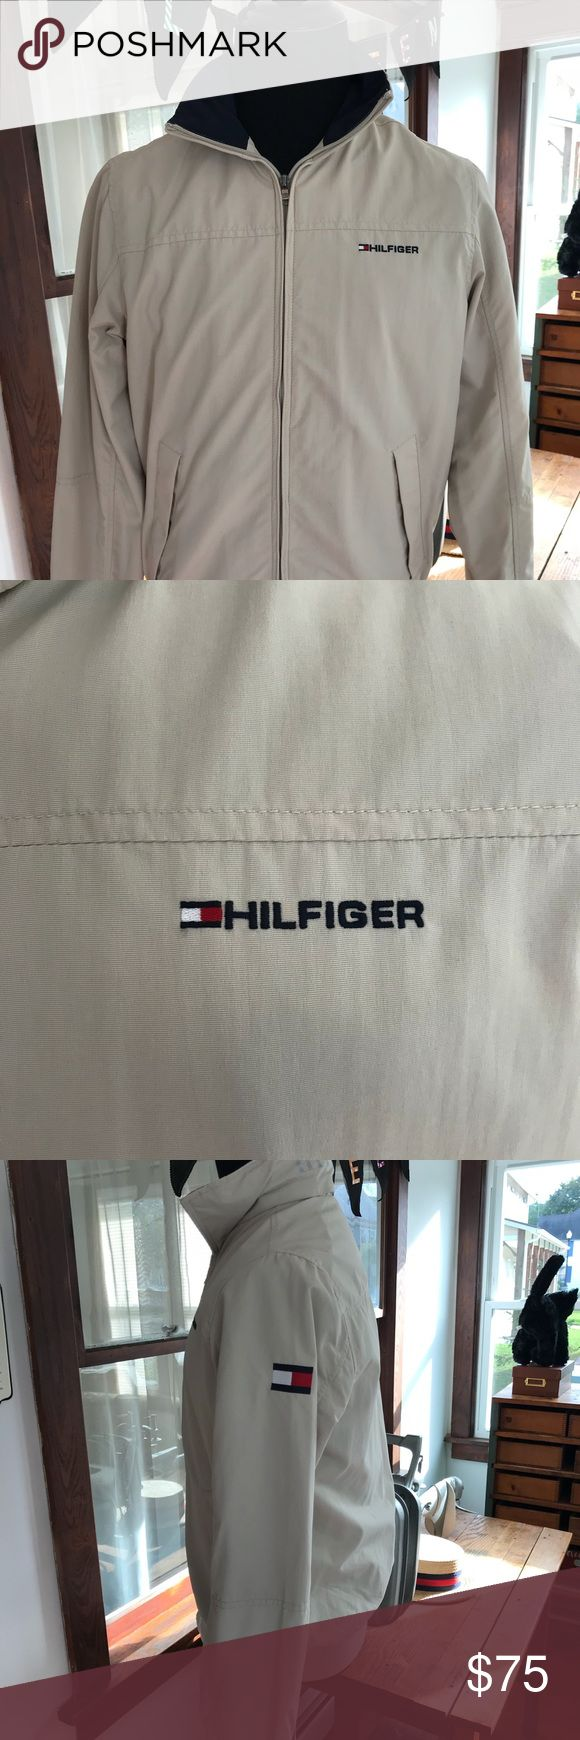 Tommy Hilfiger Yachting Jacket Like New Tommy Hilfiger Yachting Jacket Great Shape Clean Like New Beige Zipper Front Hood in Collar Tommy Hilfiger Jackets & Coats Performance Jackets